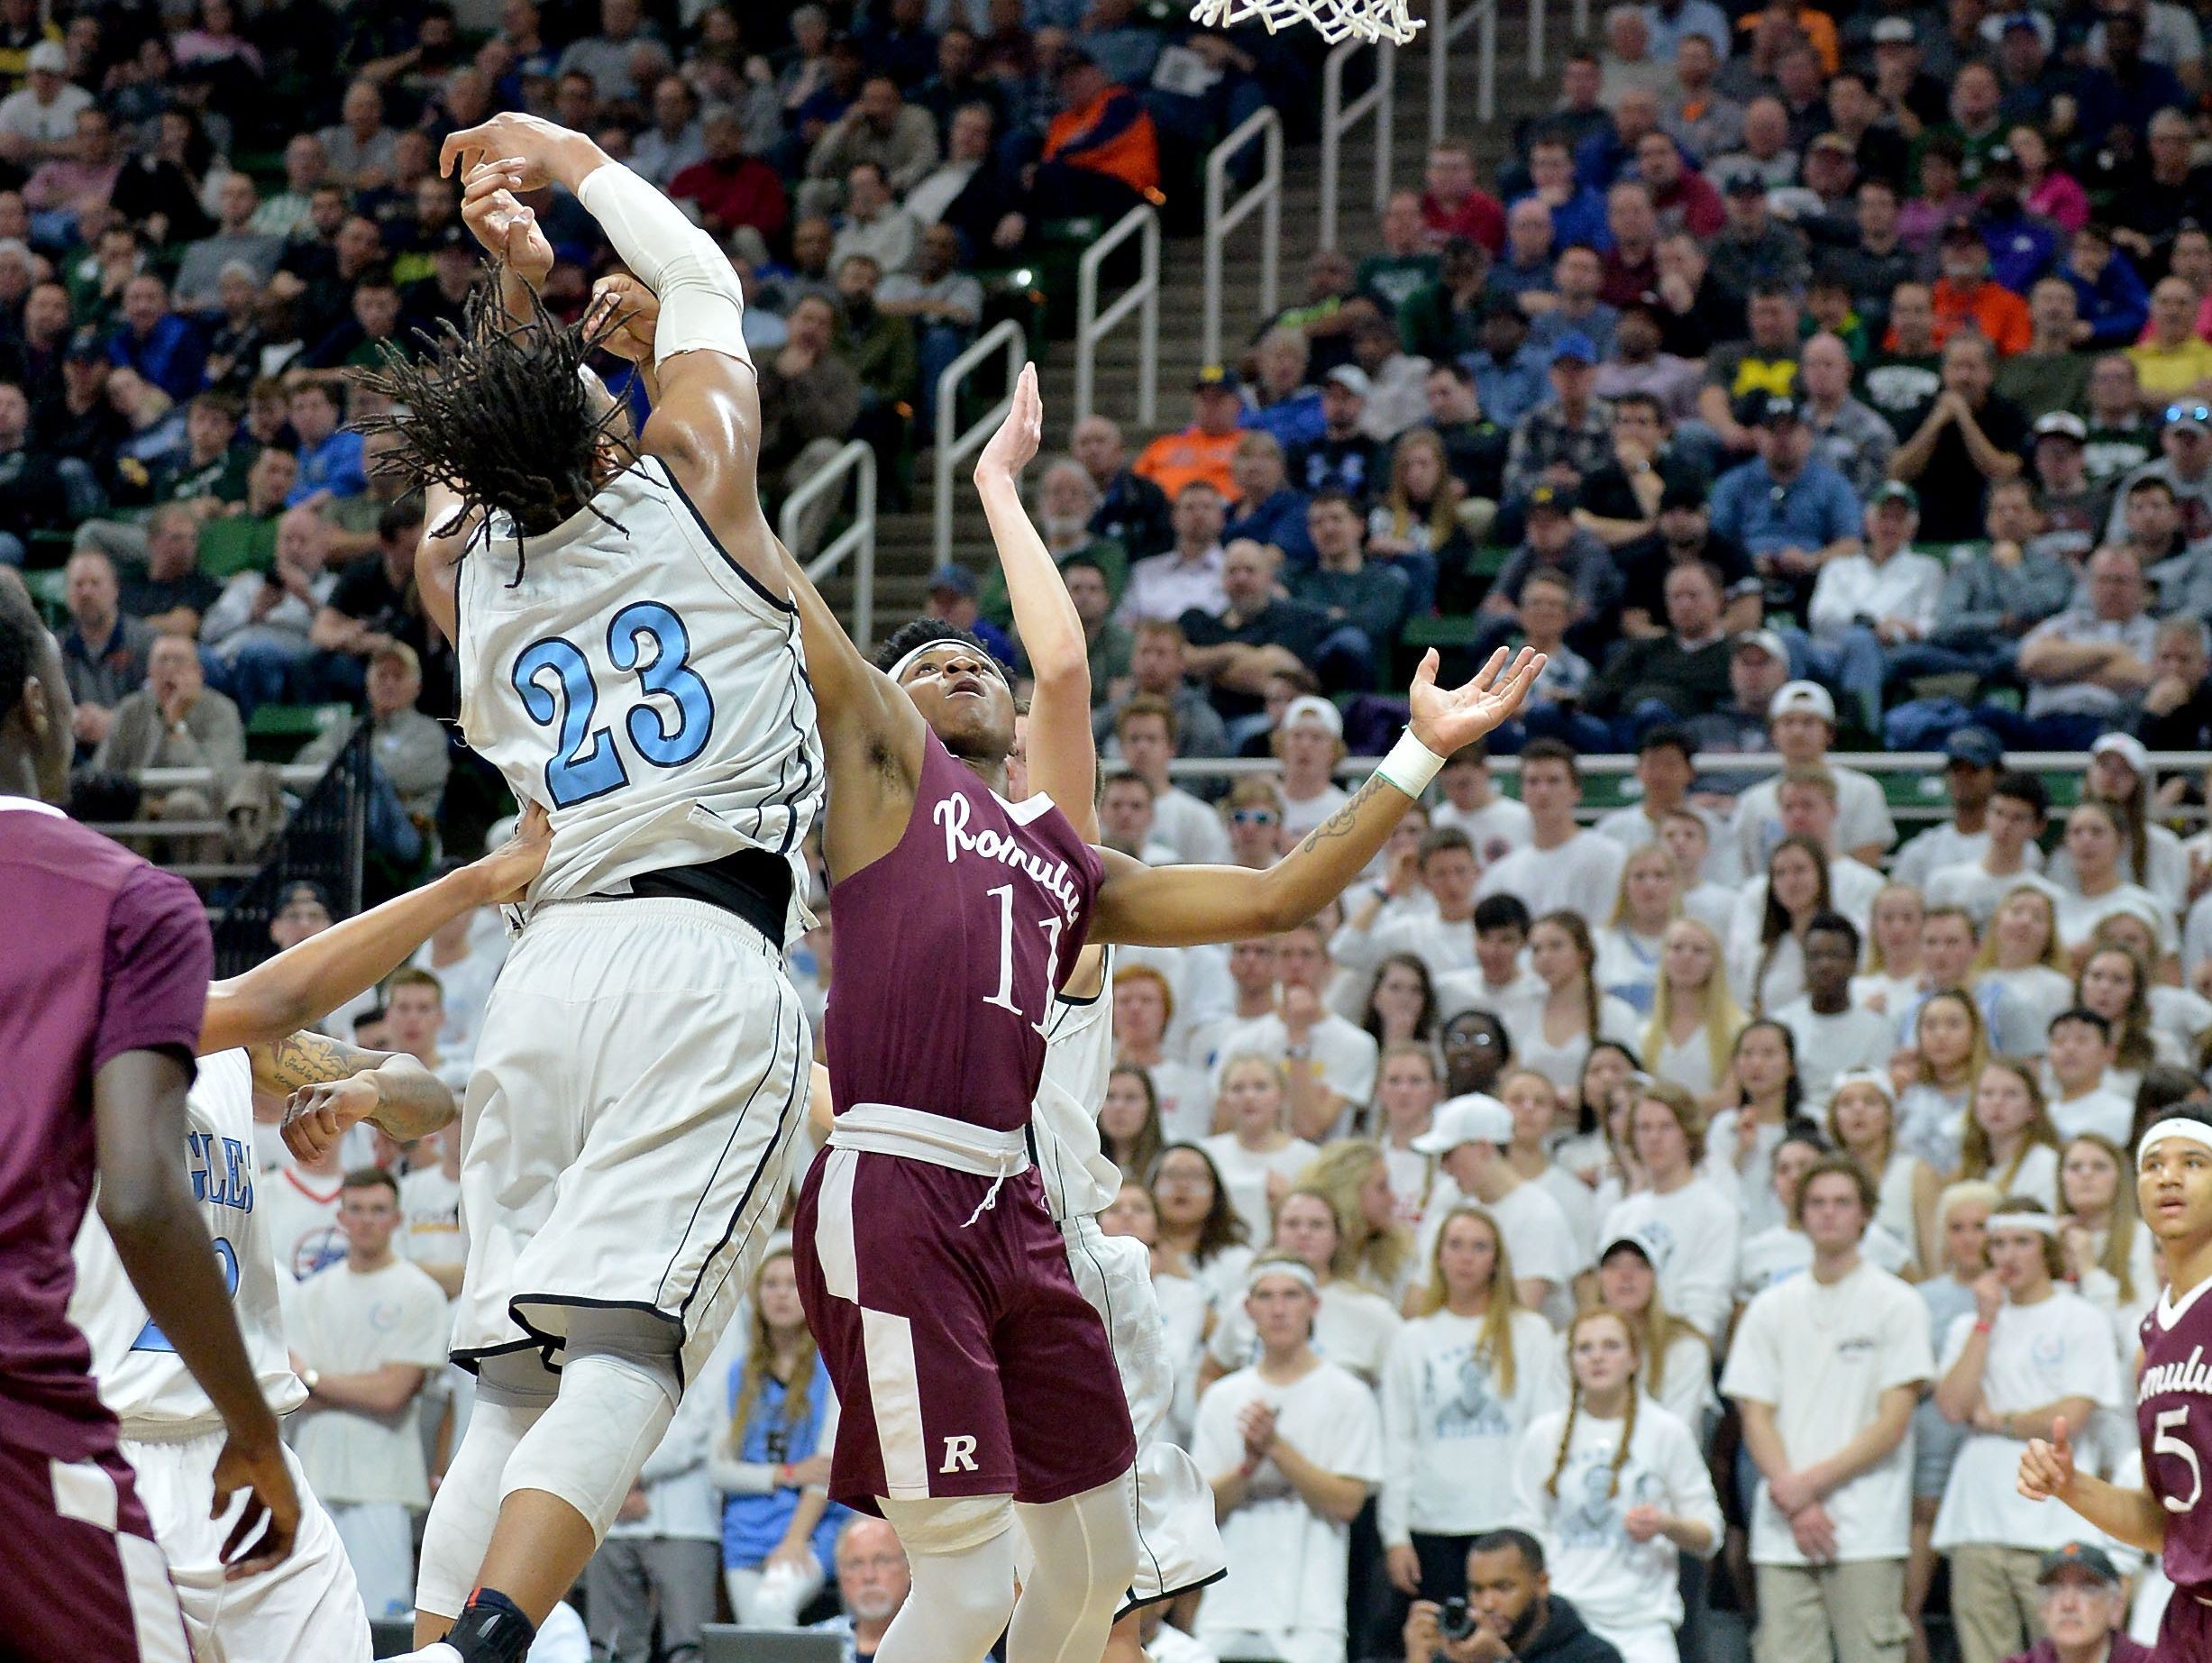 Grand Rapids Christian star forward and Michigan State signee Xavier Tillman (23) battles Romulus junior Braedon Morgan for a loose ball in a Class A semifinal on Friday, March 24, 2017 at the Breslin Center.